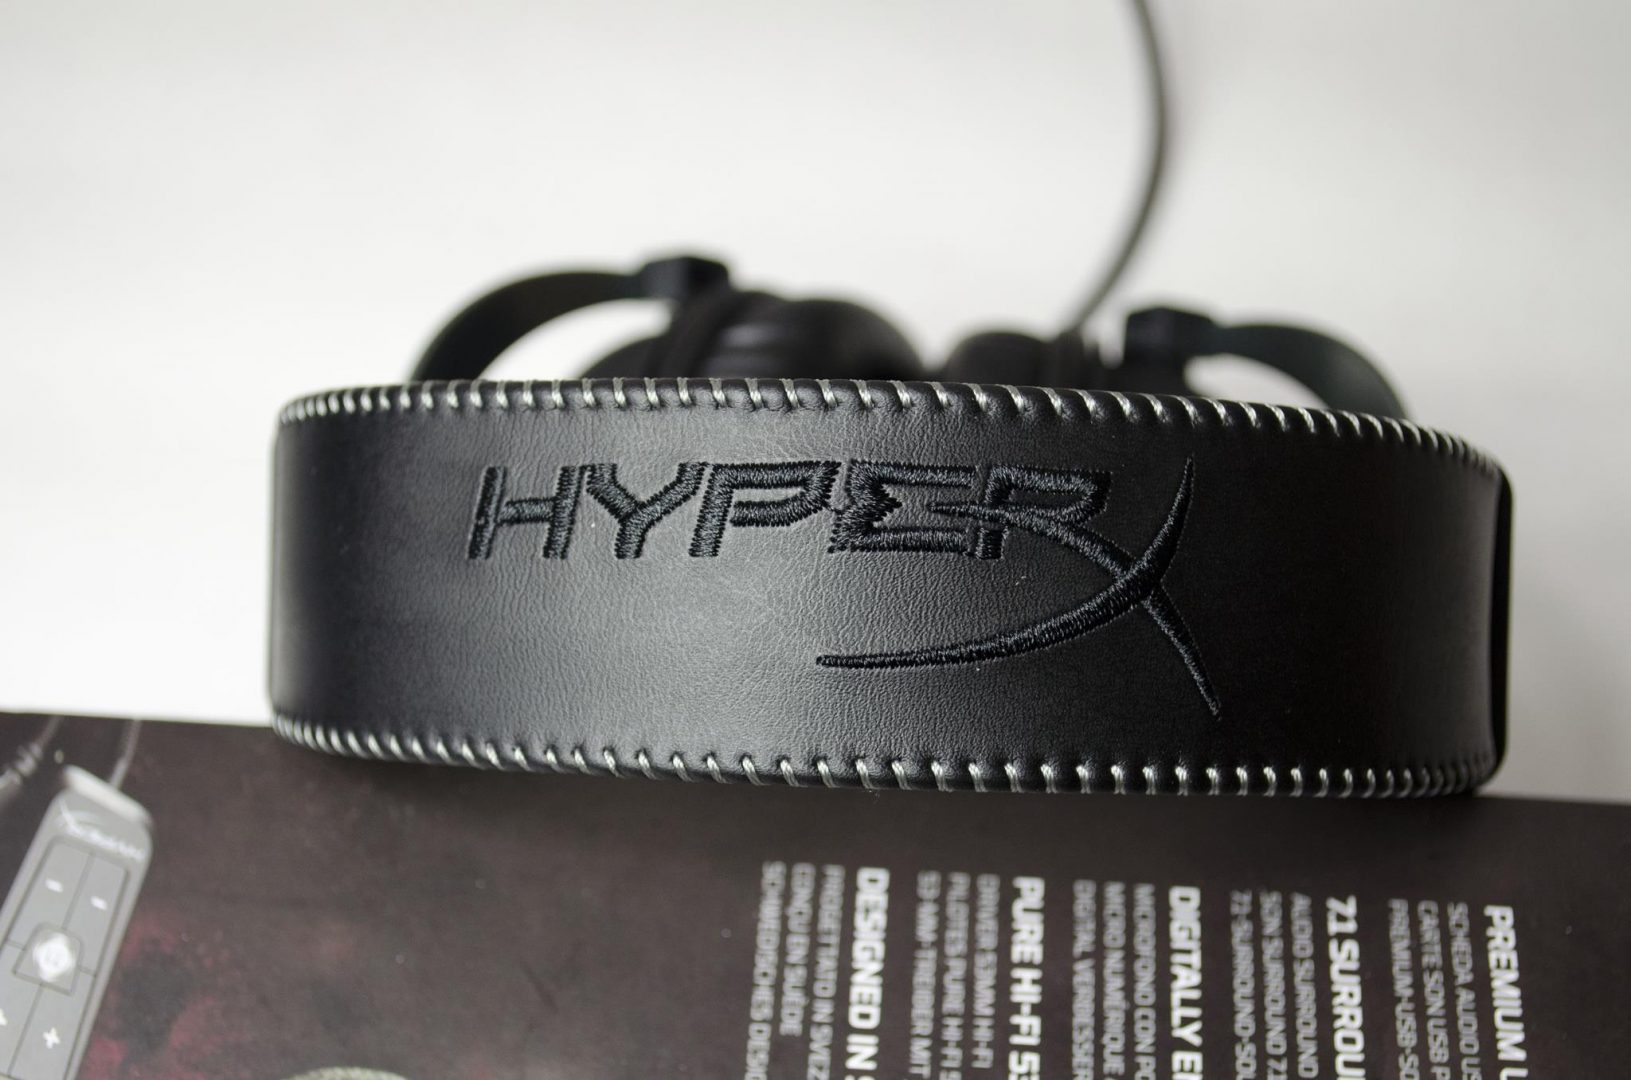 hyperx cloud ii headphones review_7